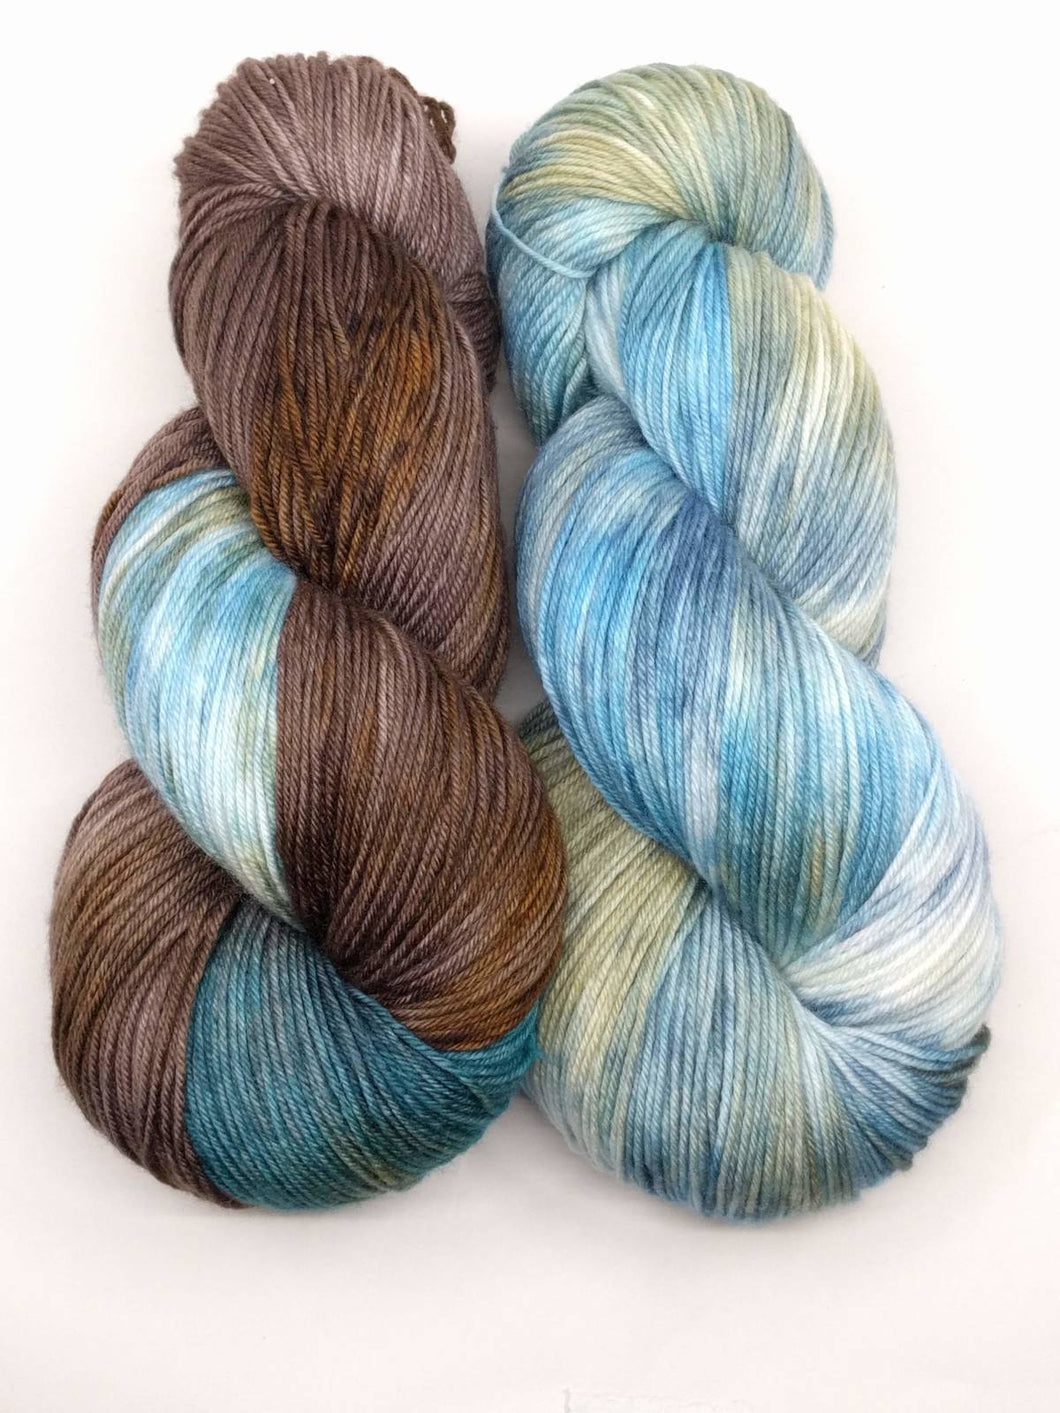 CALIFORNIA SEA OTTER - Merino Twist kit